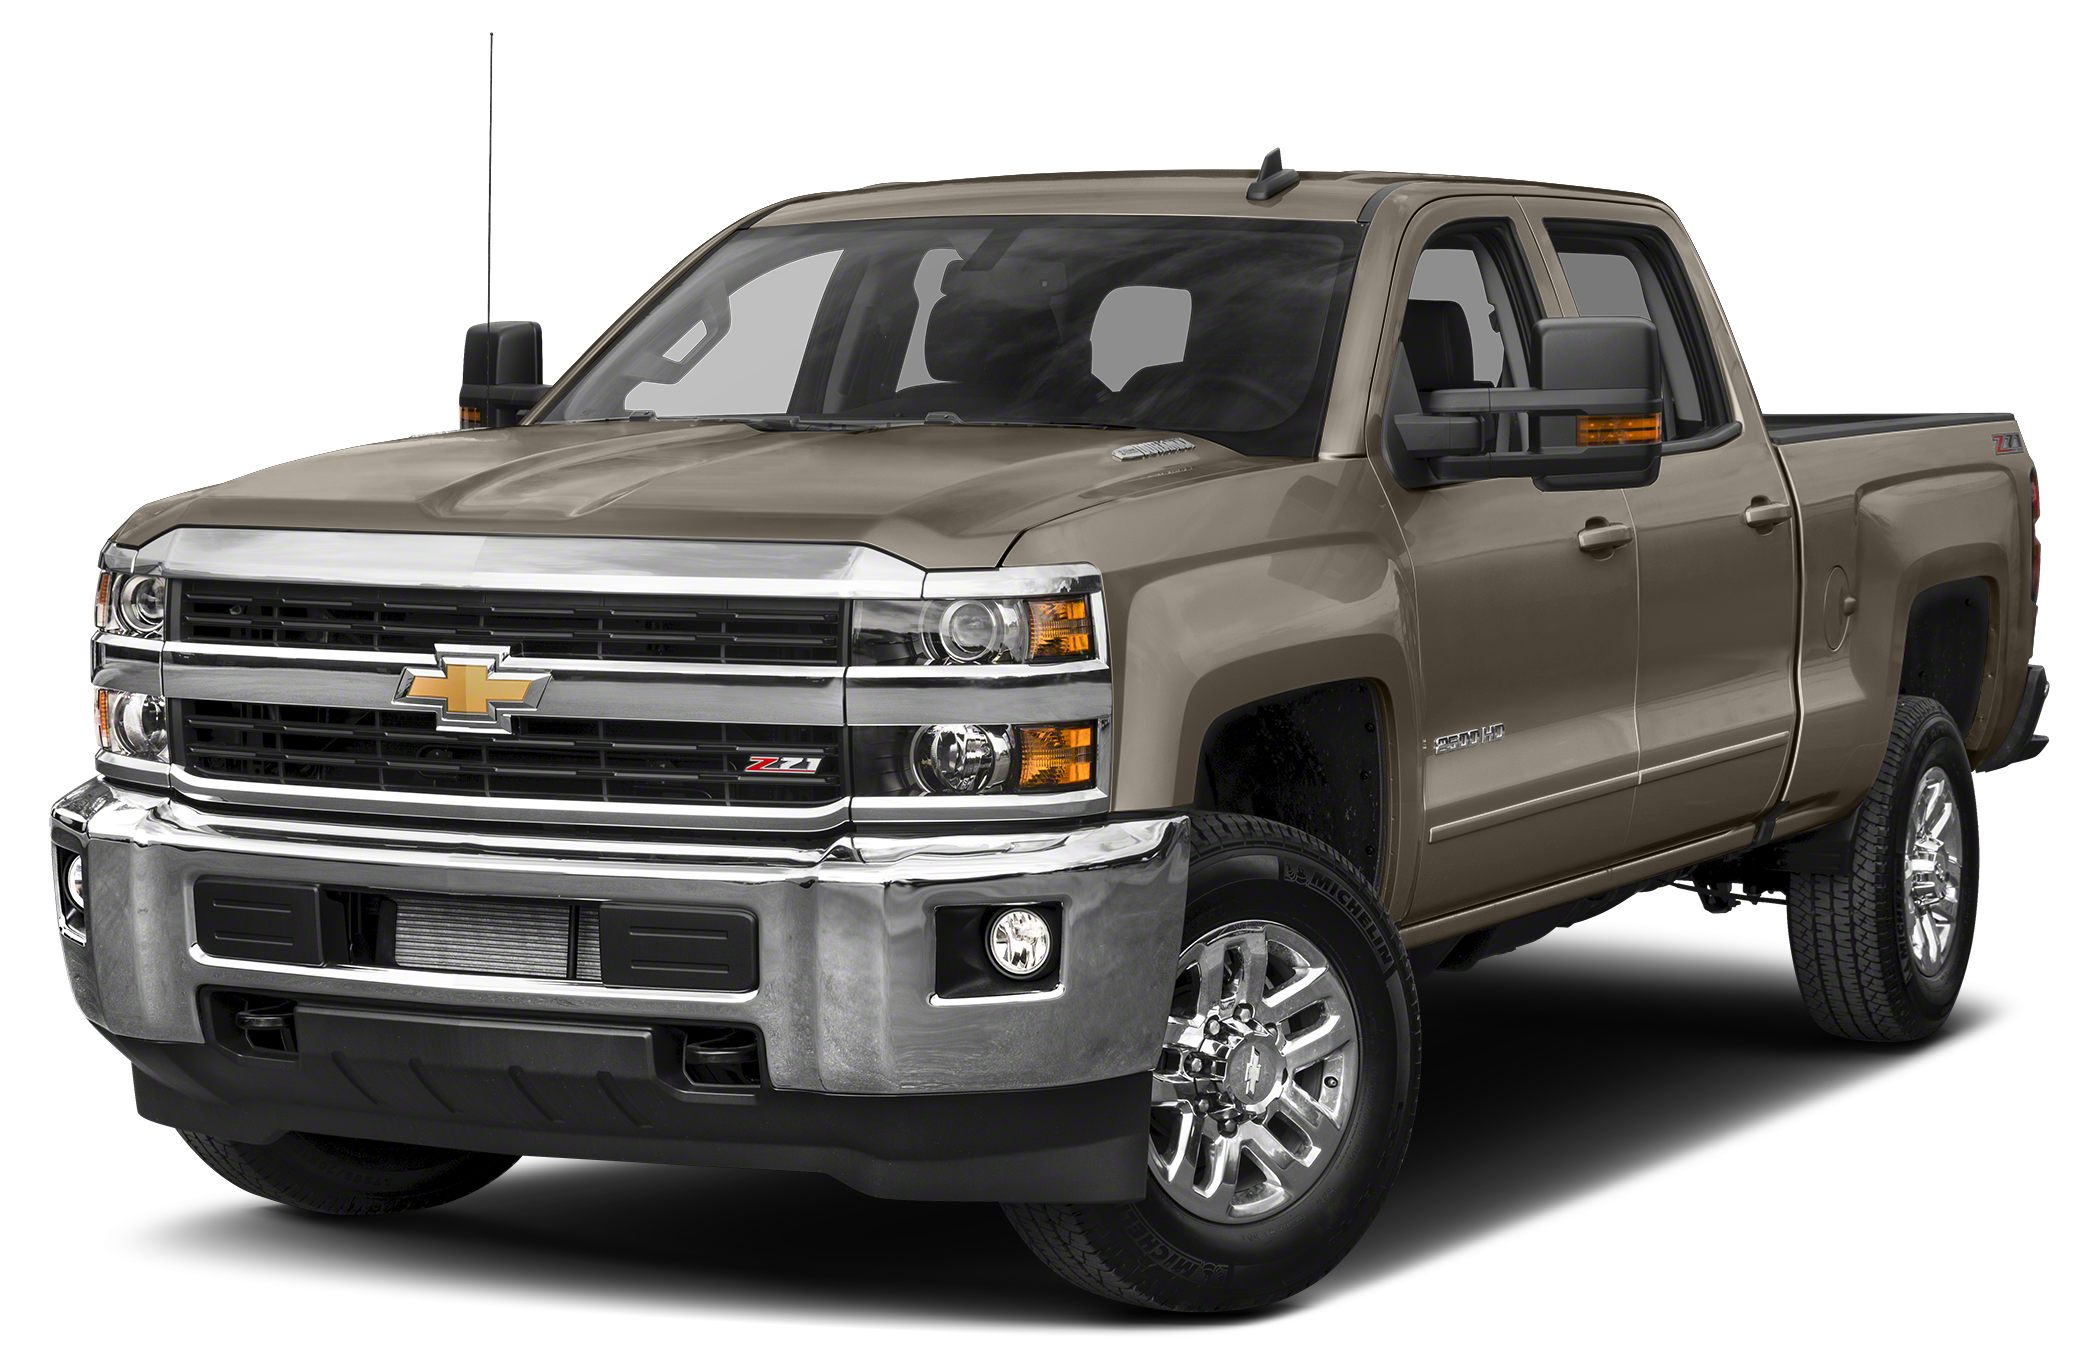 ram 3500 night edition vs chevrolet silverado 3500hd lt vs ford f 350 xlt vs gmc sierra 3500hd sle. Black Bedroom Furniture Sets. Home Design Ideas